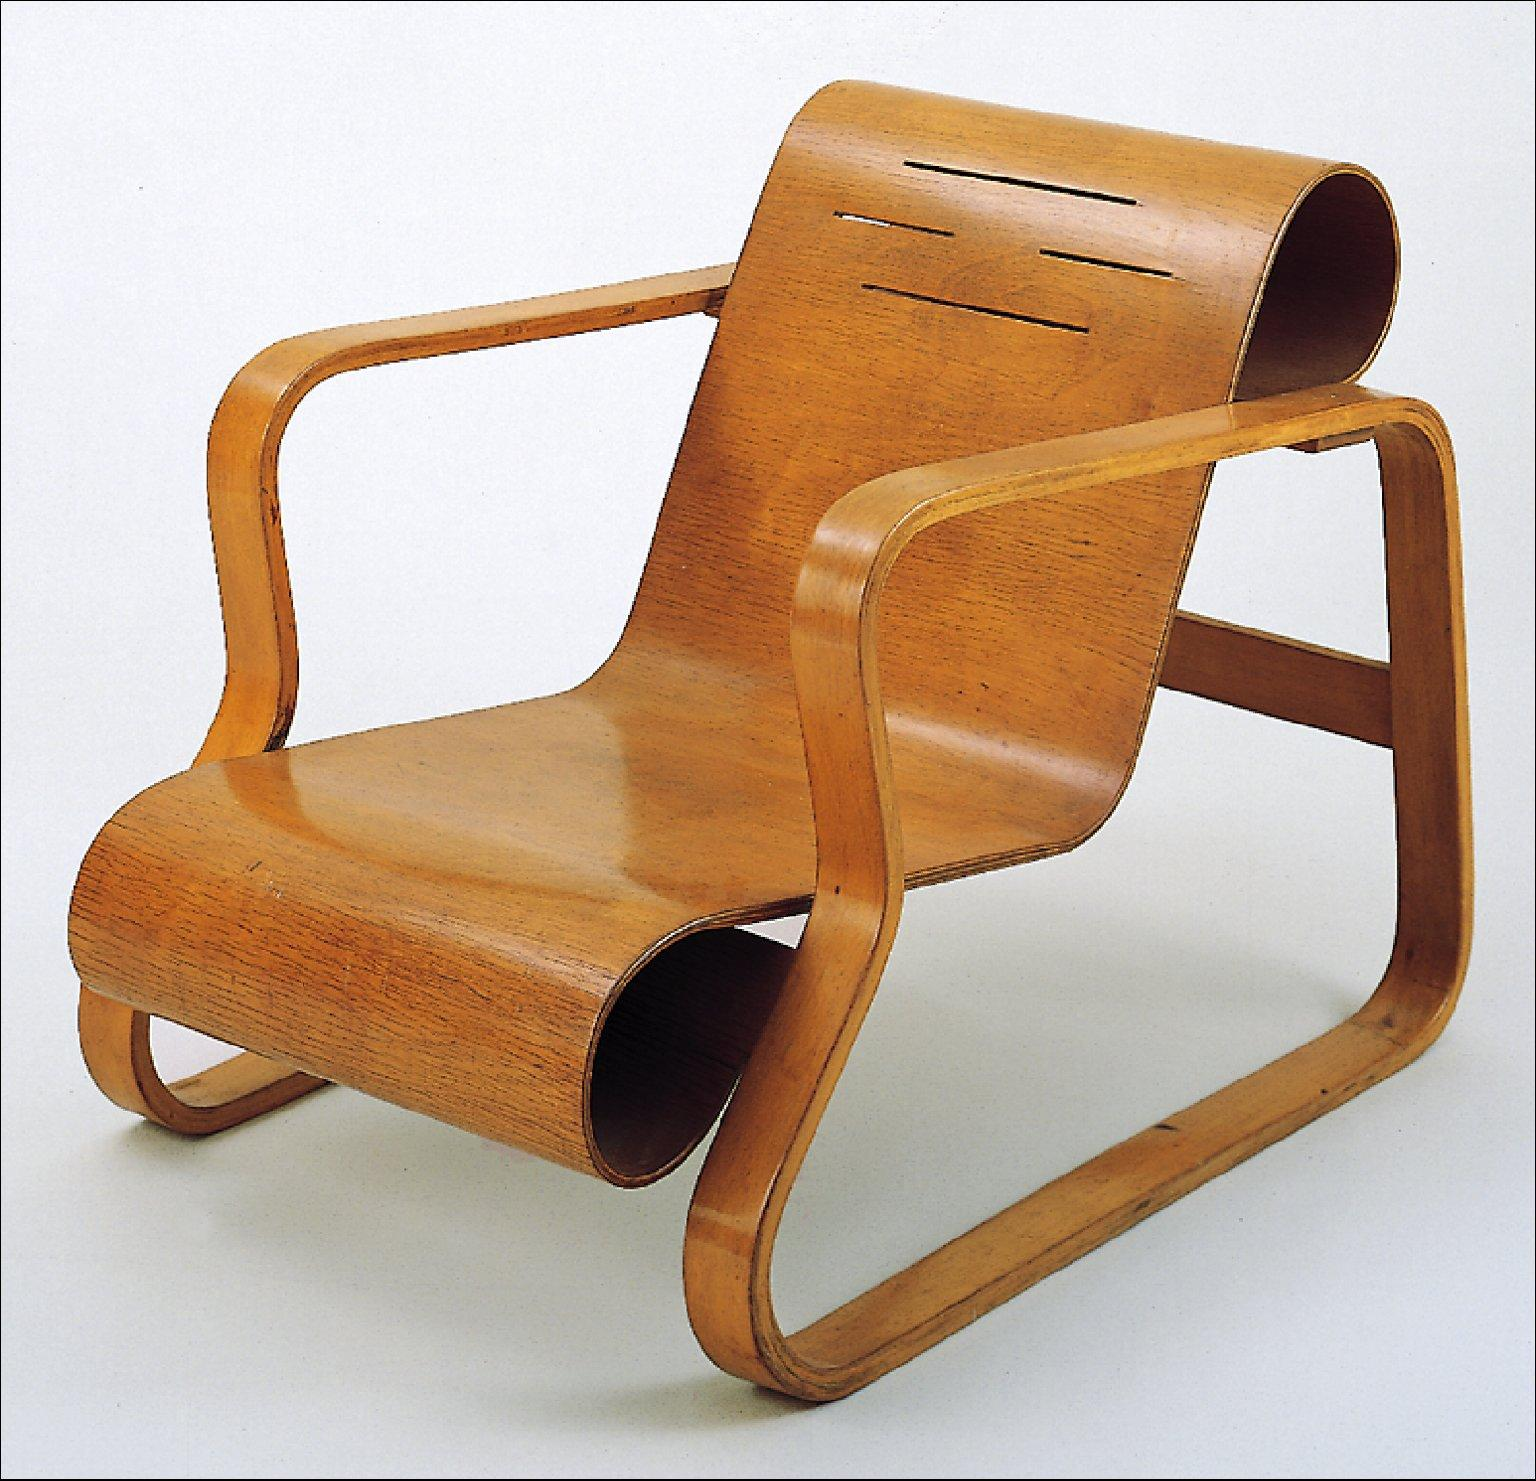 how to make a plywood chair kids table and sets chairs in by alvar aalto danish design review that supported the simple seat but as designs became more sophisticated complicated form used bentwood frame was